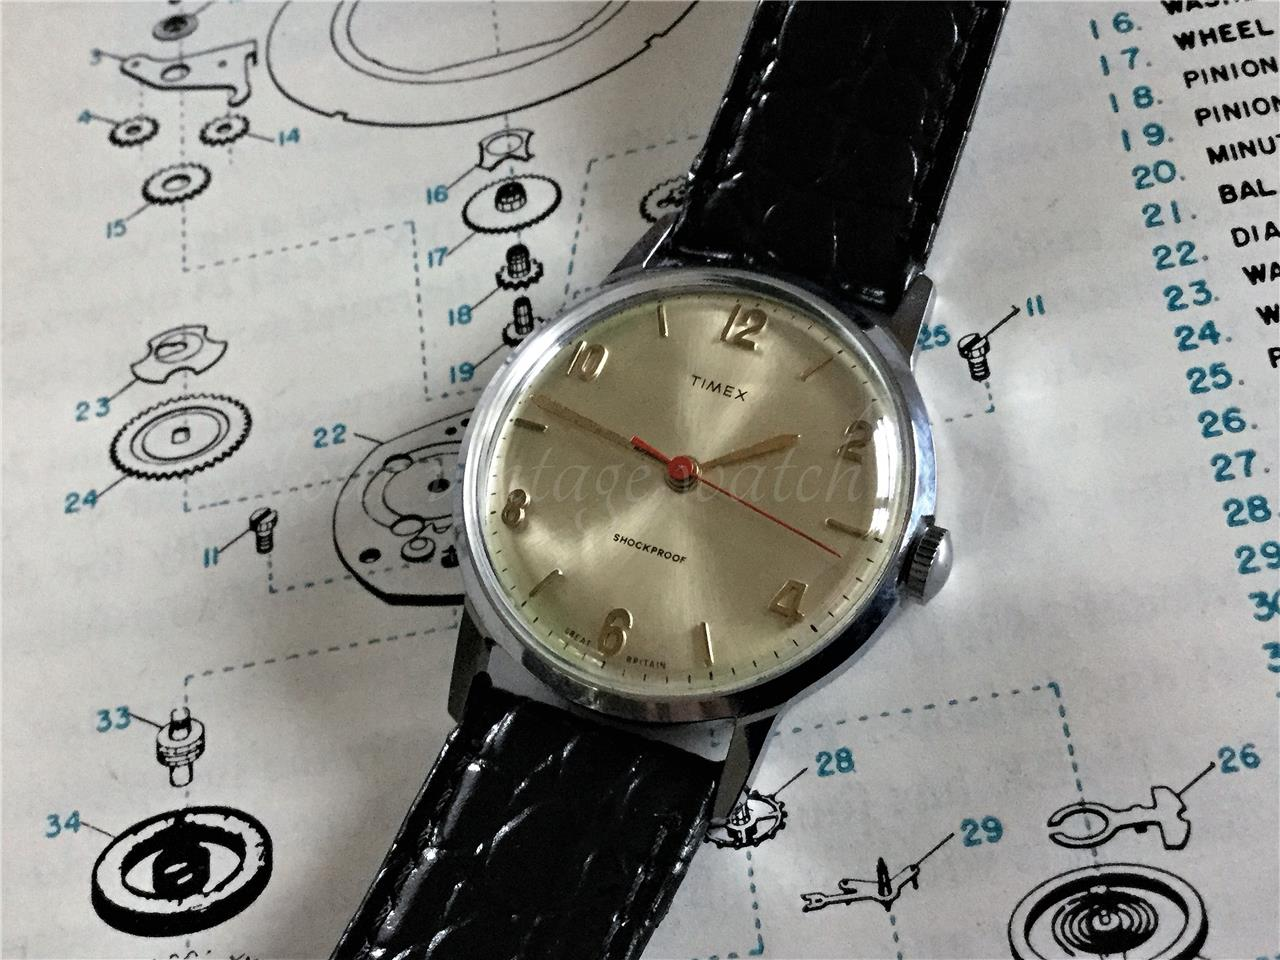 Vintage watch servicing sorry